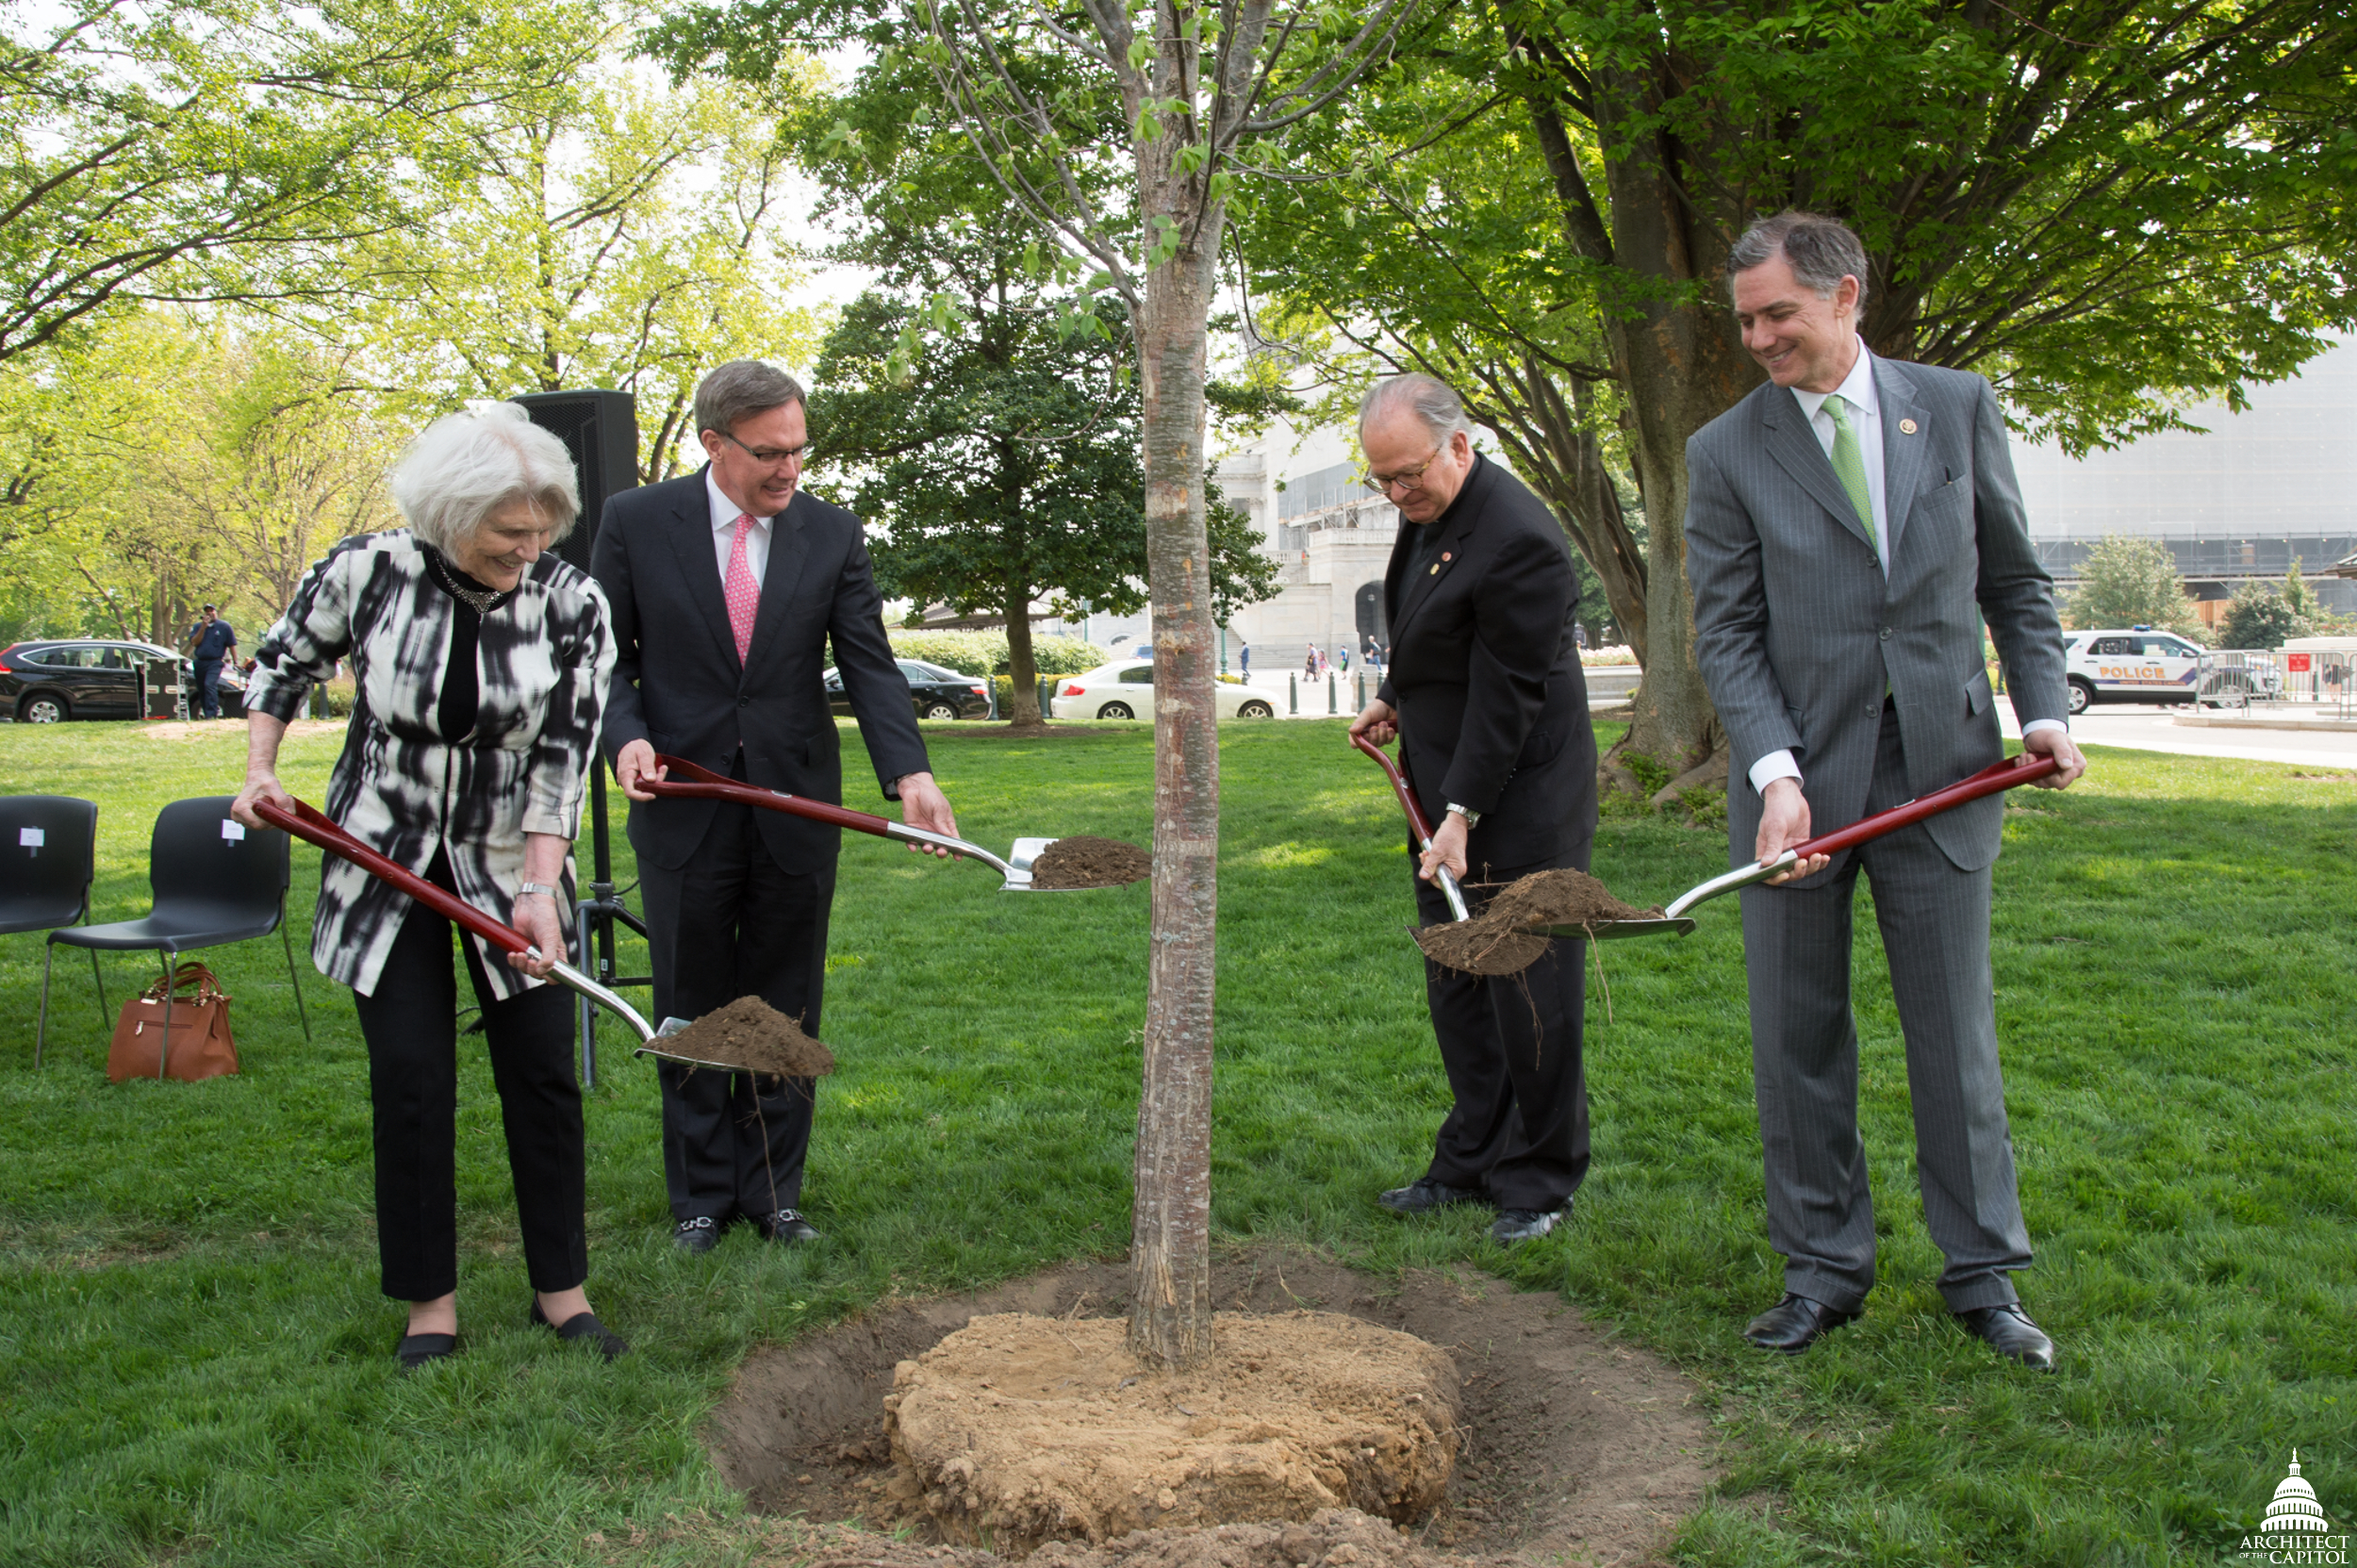 Tree planting ceremony with shovels.